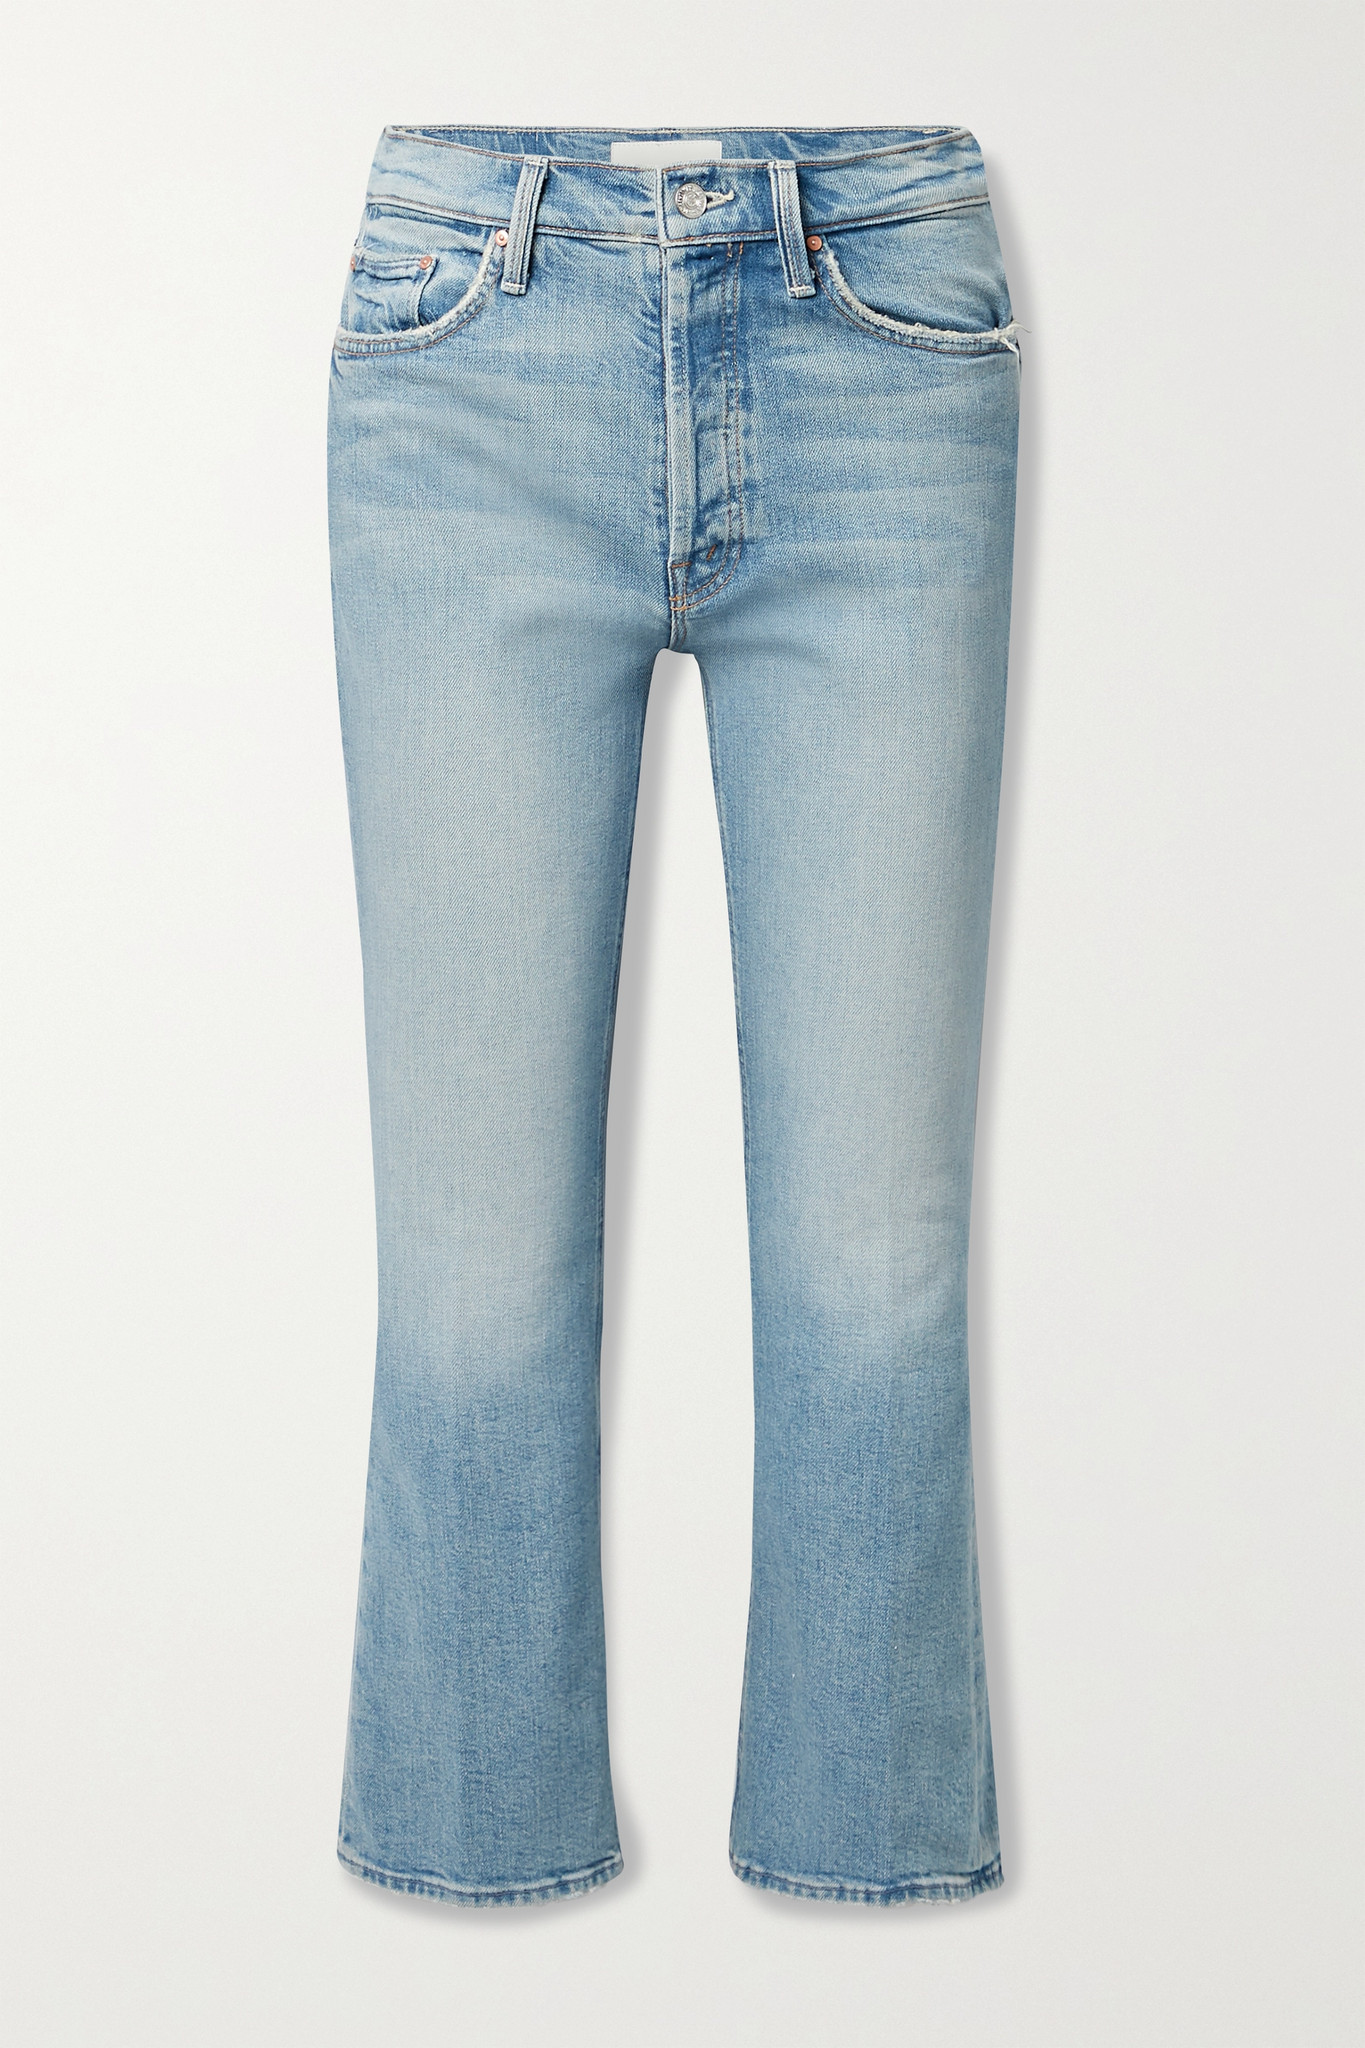 MOTHER - The Tripper Cropped High-rise Flared Jeans - Blue - 32